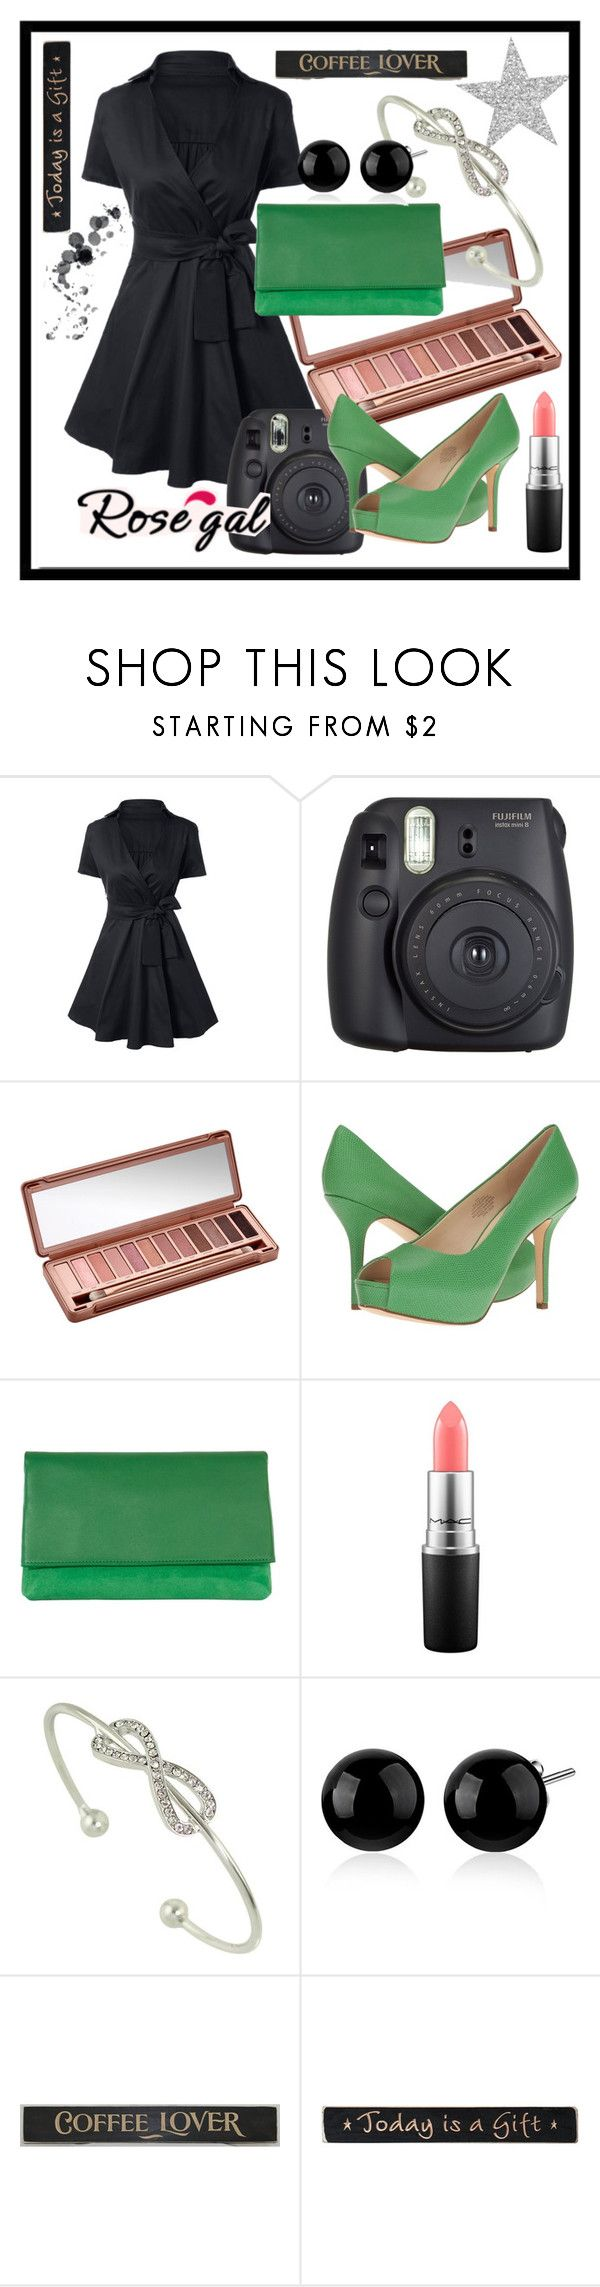 """""""Today#is#a#Gift"""" by bamra ❤ liked on Polyvore featuring Fuji, Urban Decay, Nine West, Karen Millen, MAC Cosmetics, DutchCrafters and vintage"""